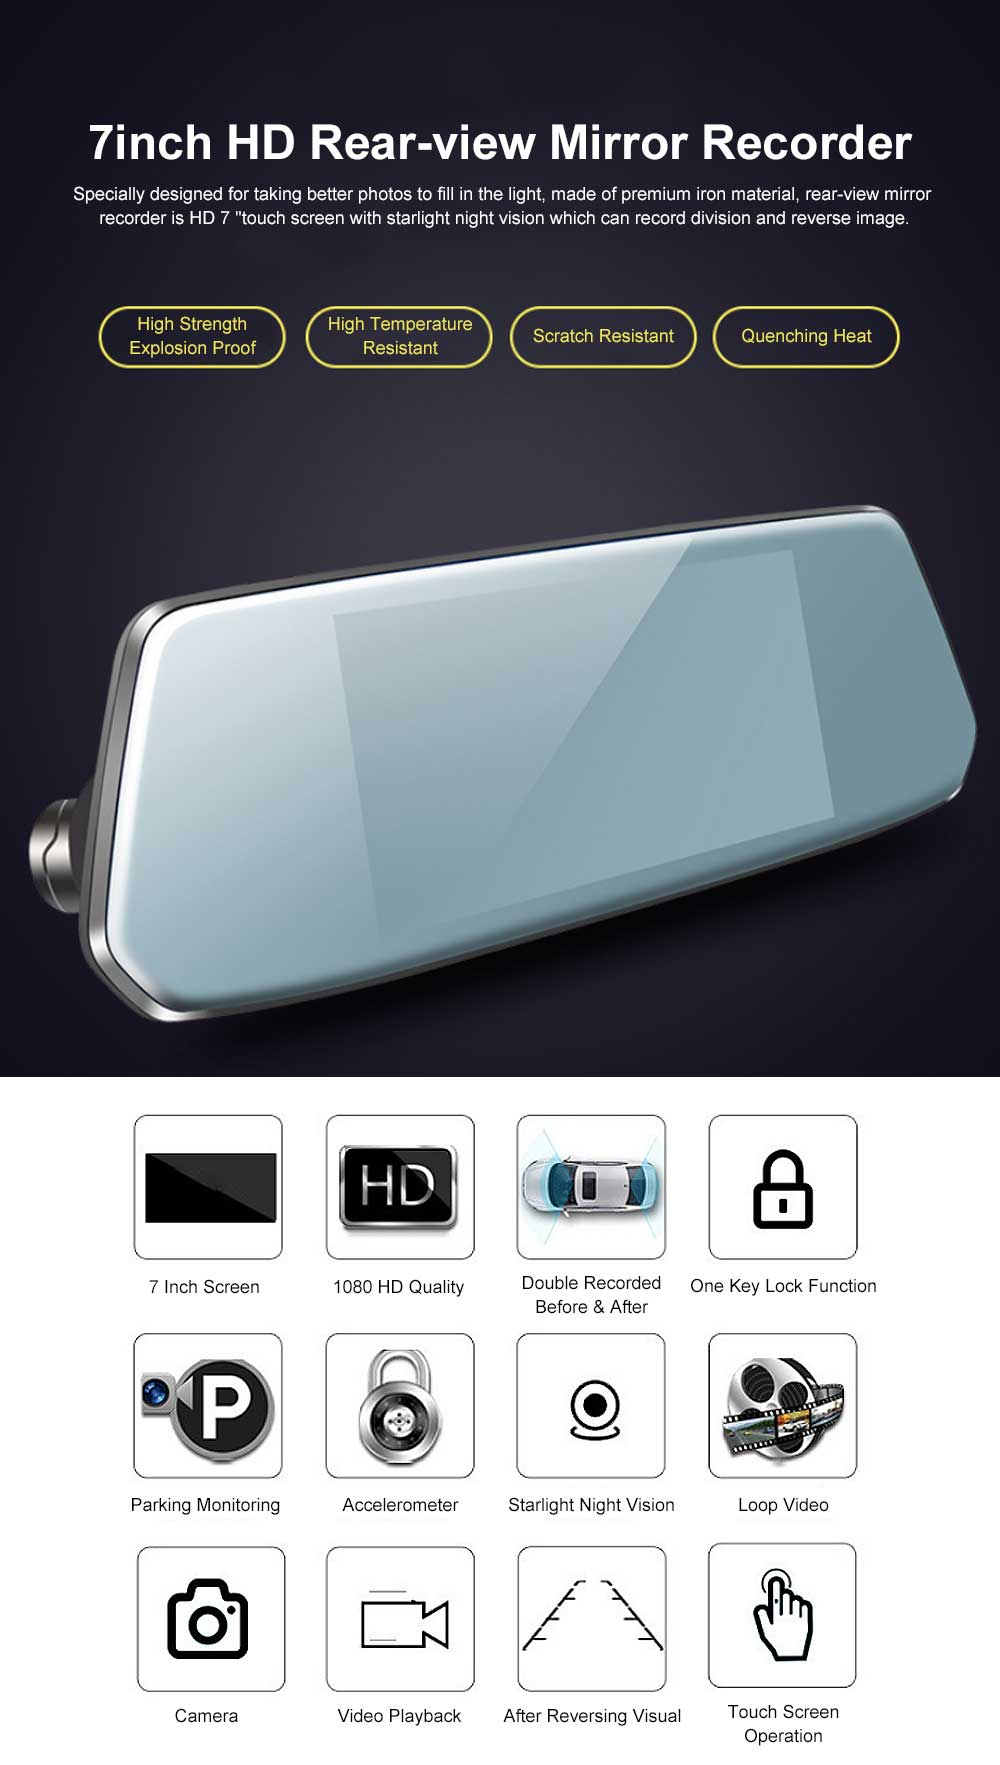 7 inch IPS Rear-view Mirror Recorder Equipped with Touch Function of 1080P High-definition Dual Recording 0